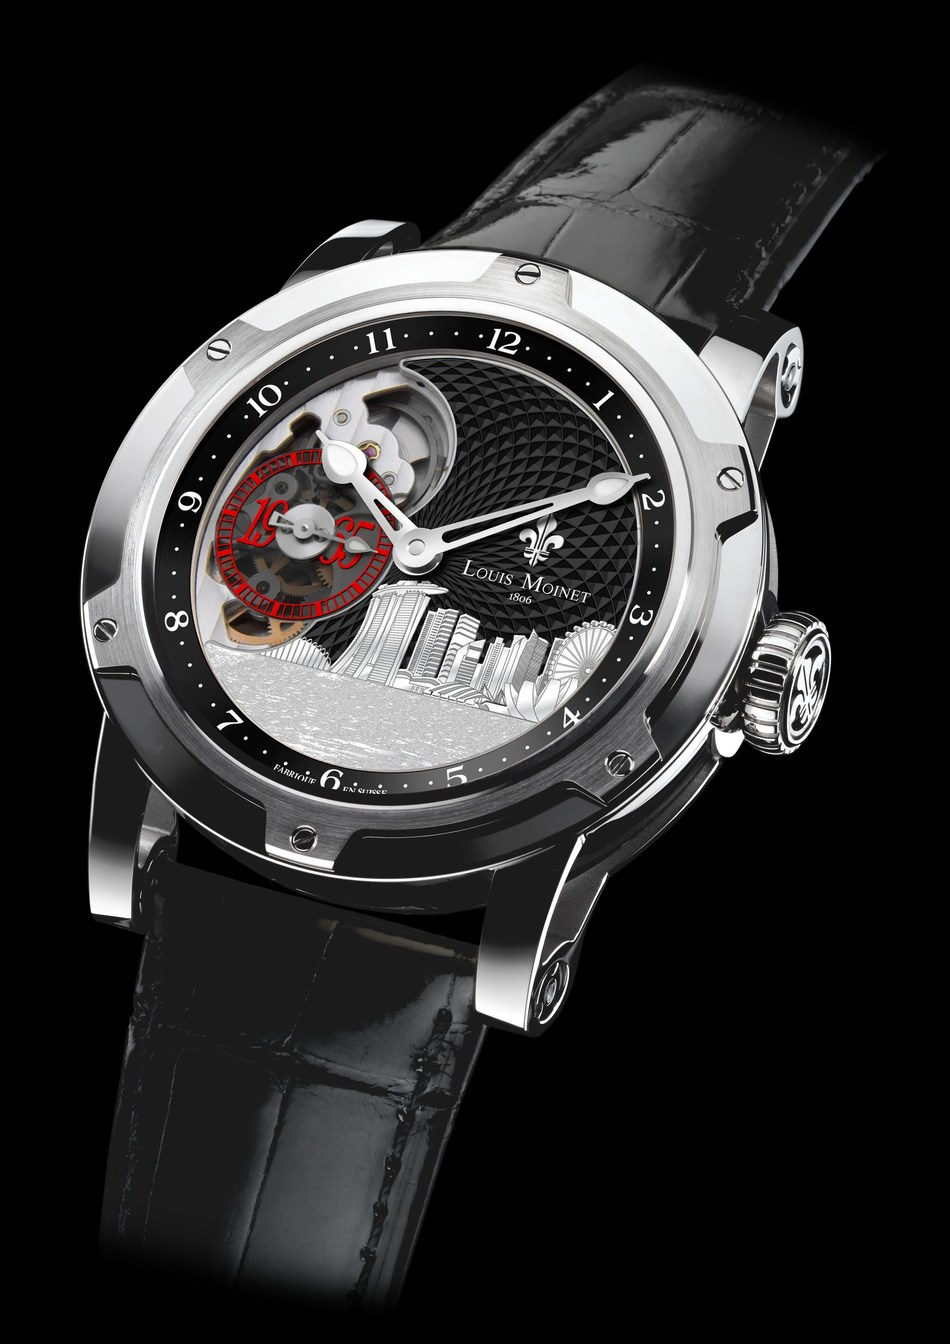 The Louis Moinet Singapore Edition Watch (PRNewsfoto/Wealth Solutions)